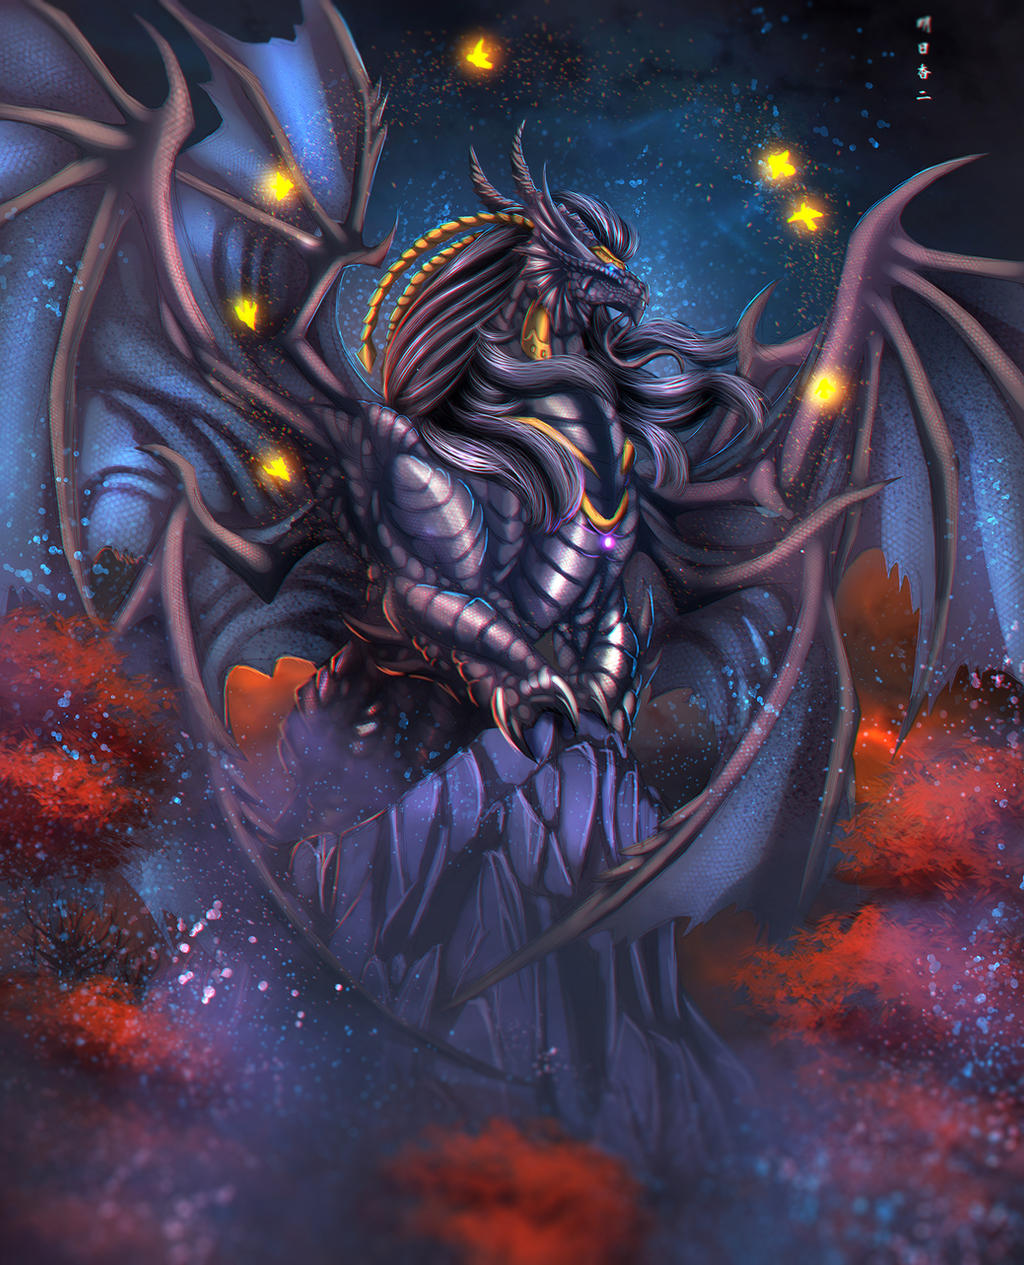 King Bahamut and the Seven Canaries by Ghostwalker2061 on DeviantArt